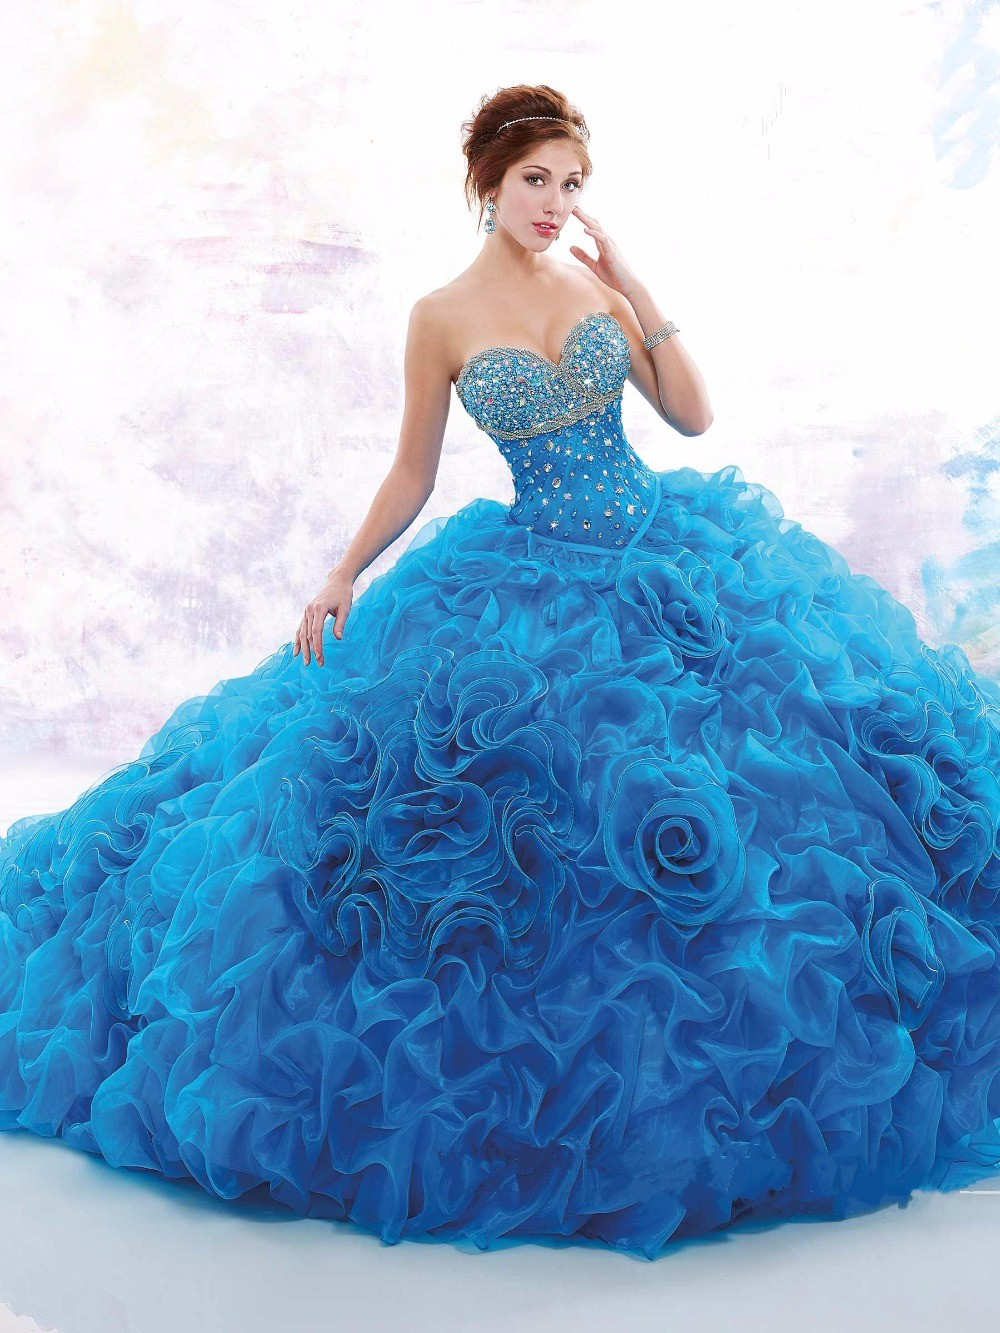 2016-New-Arrival-Free-Shipping-Baby-Blue-Bodice-Corset-Quinceanera-Dresses-Ball-Gown-Yisha-Lady-Custom